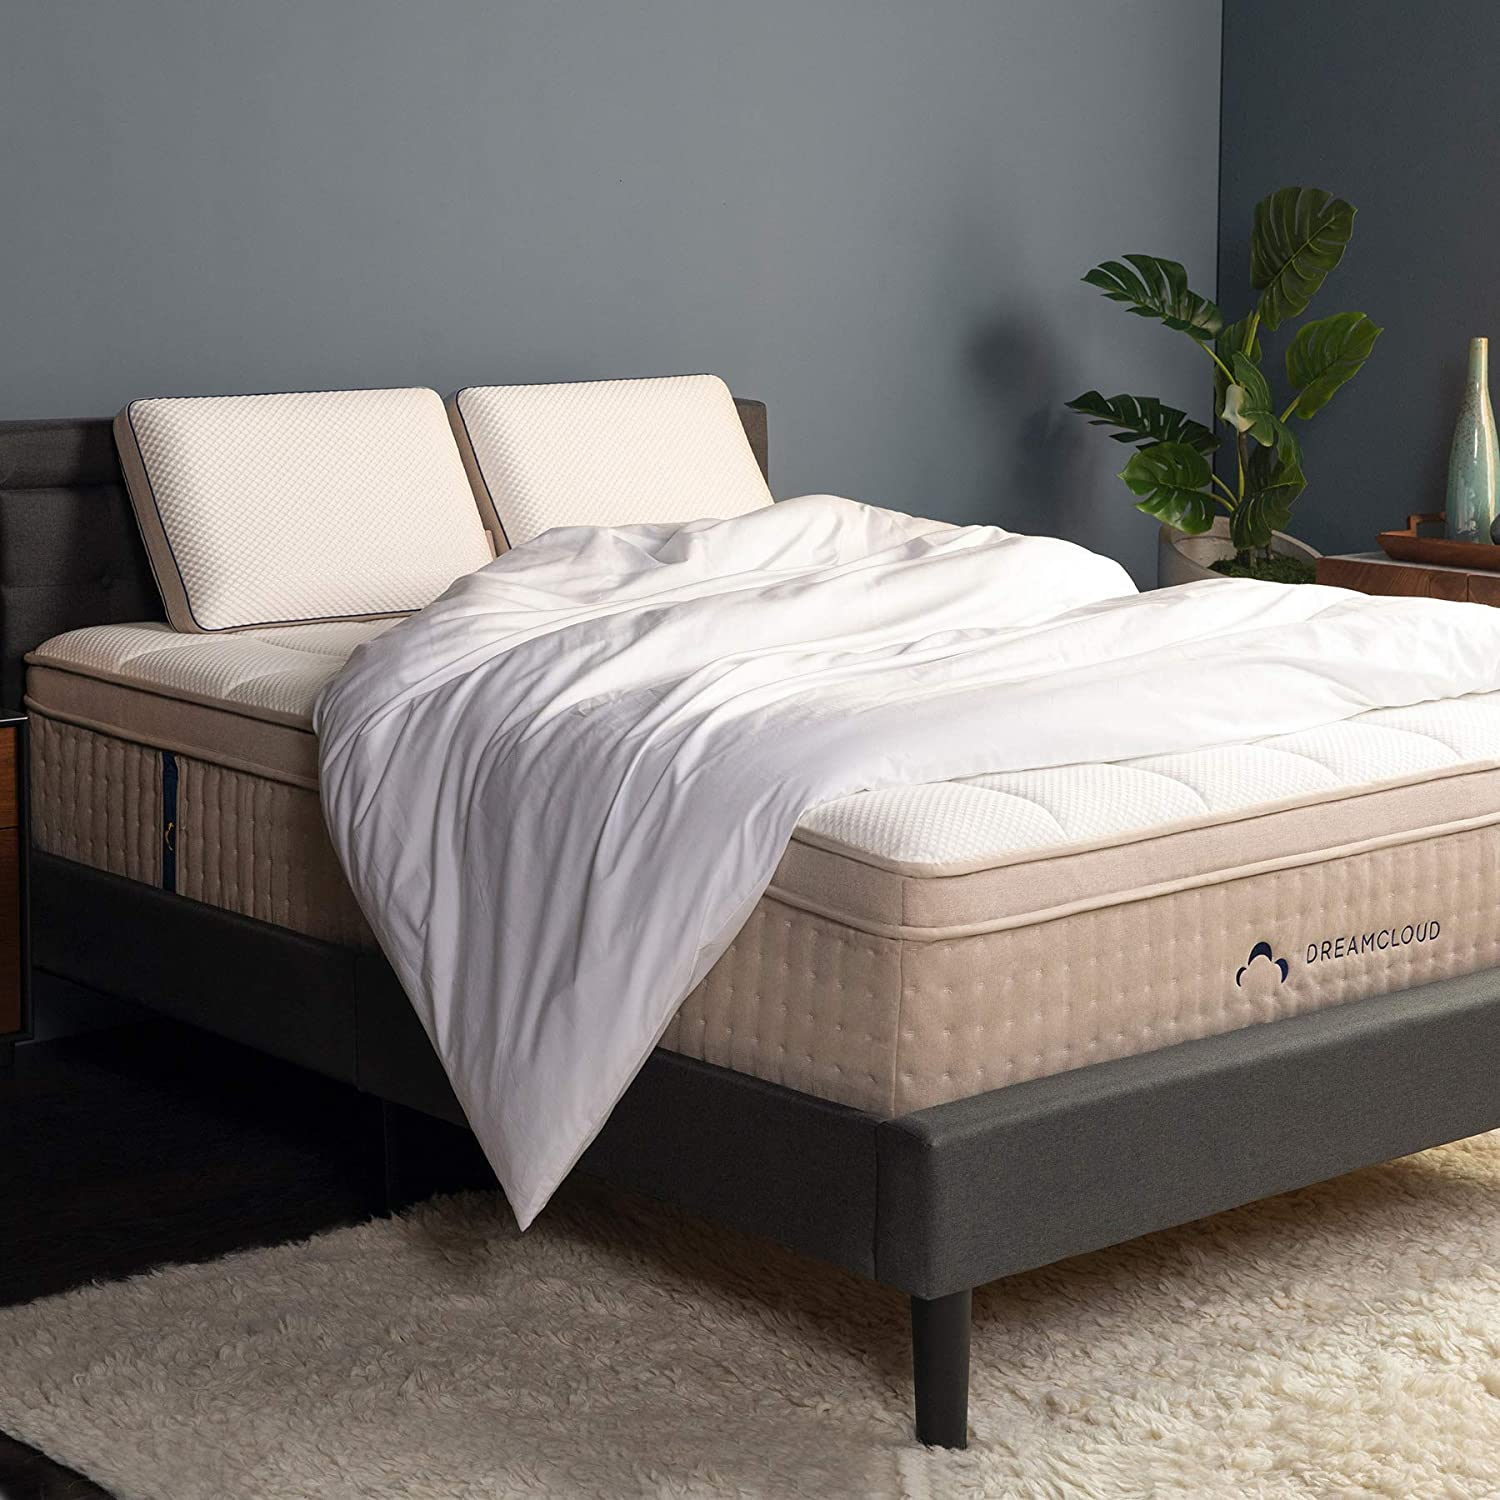 DreamCloud King Mattress